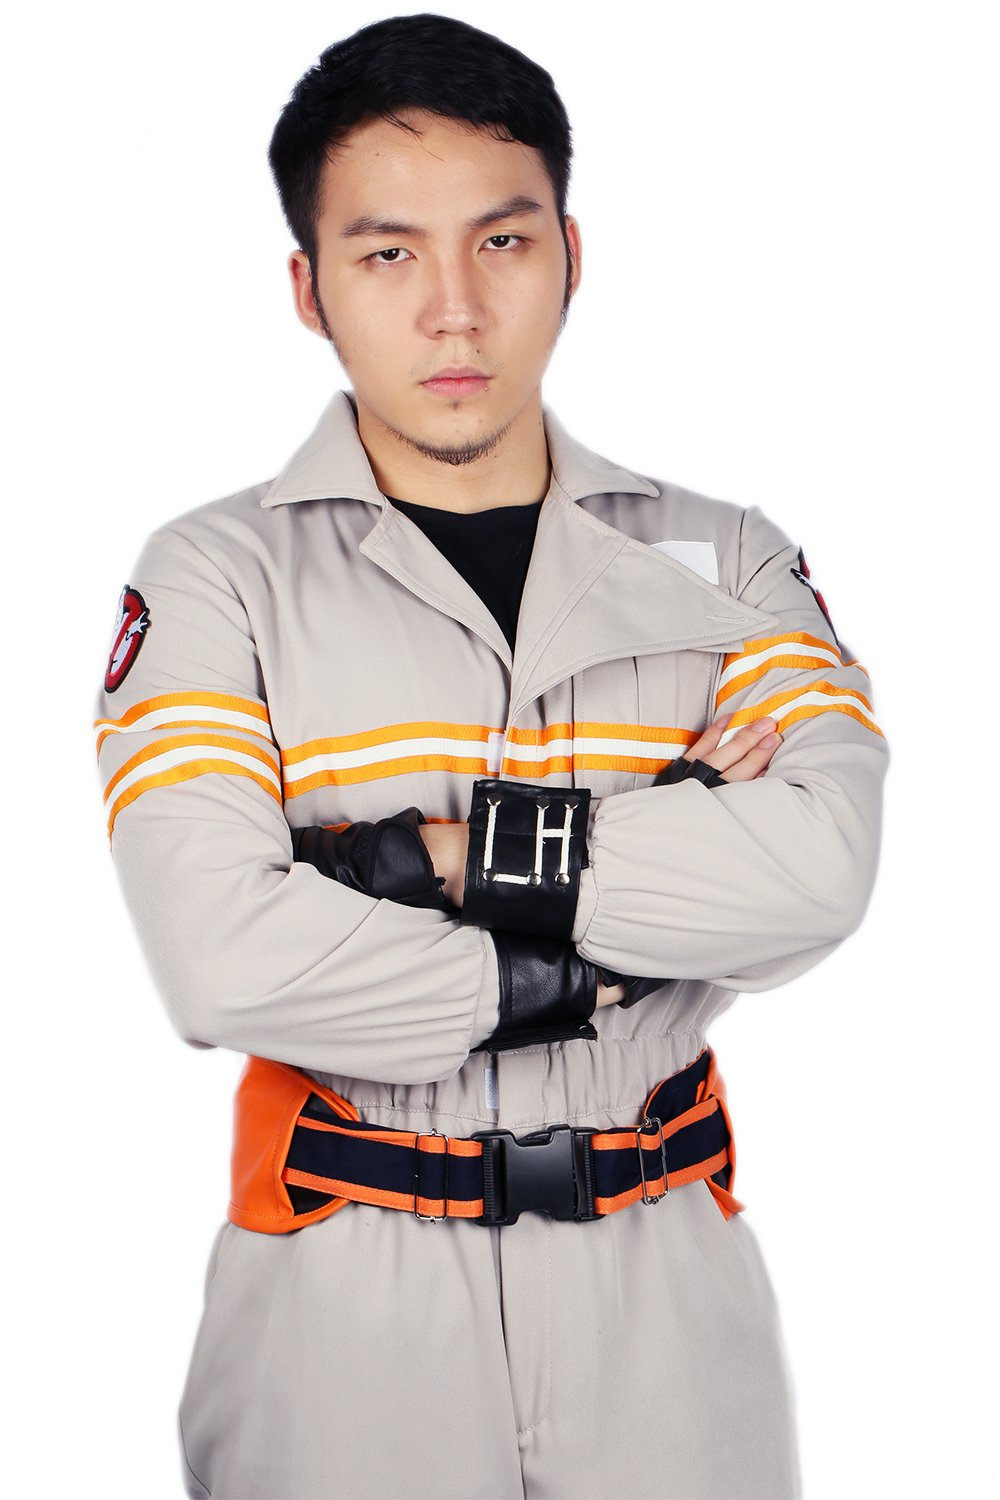 Ghostbusters Costume Deluxe Jumpsuit Embroidery Logo Cotton Halloween Cosplay Xcoser M by xcoser (Image #5)